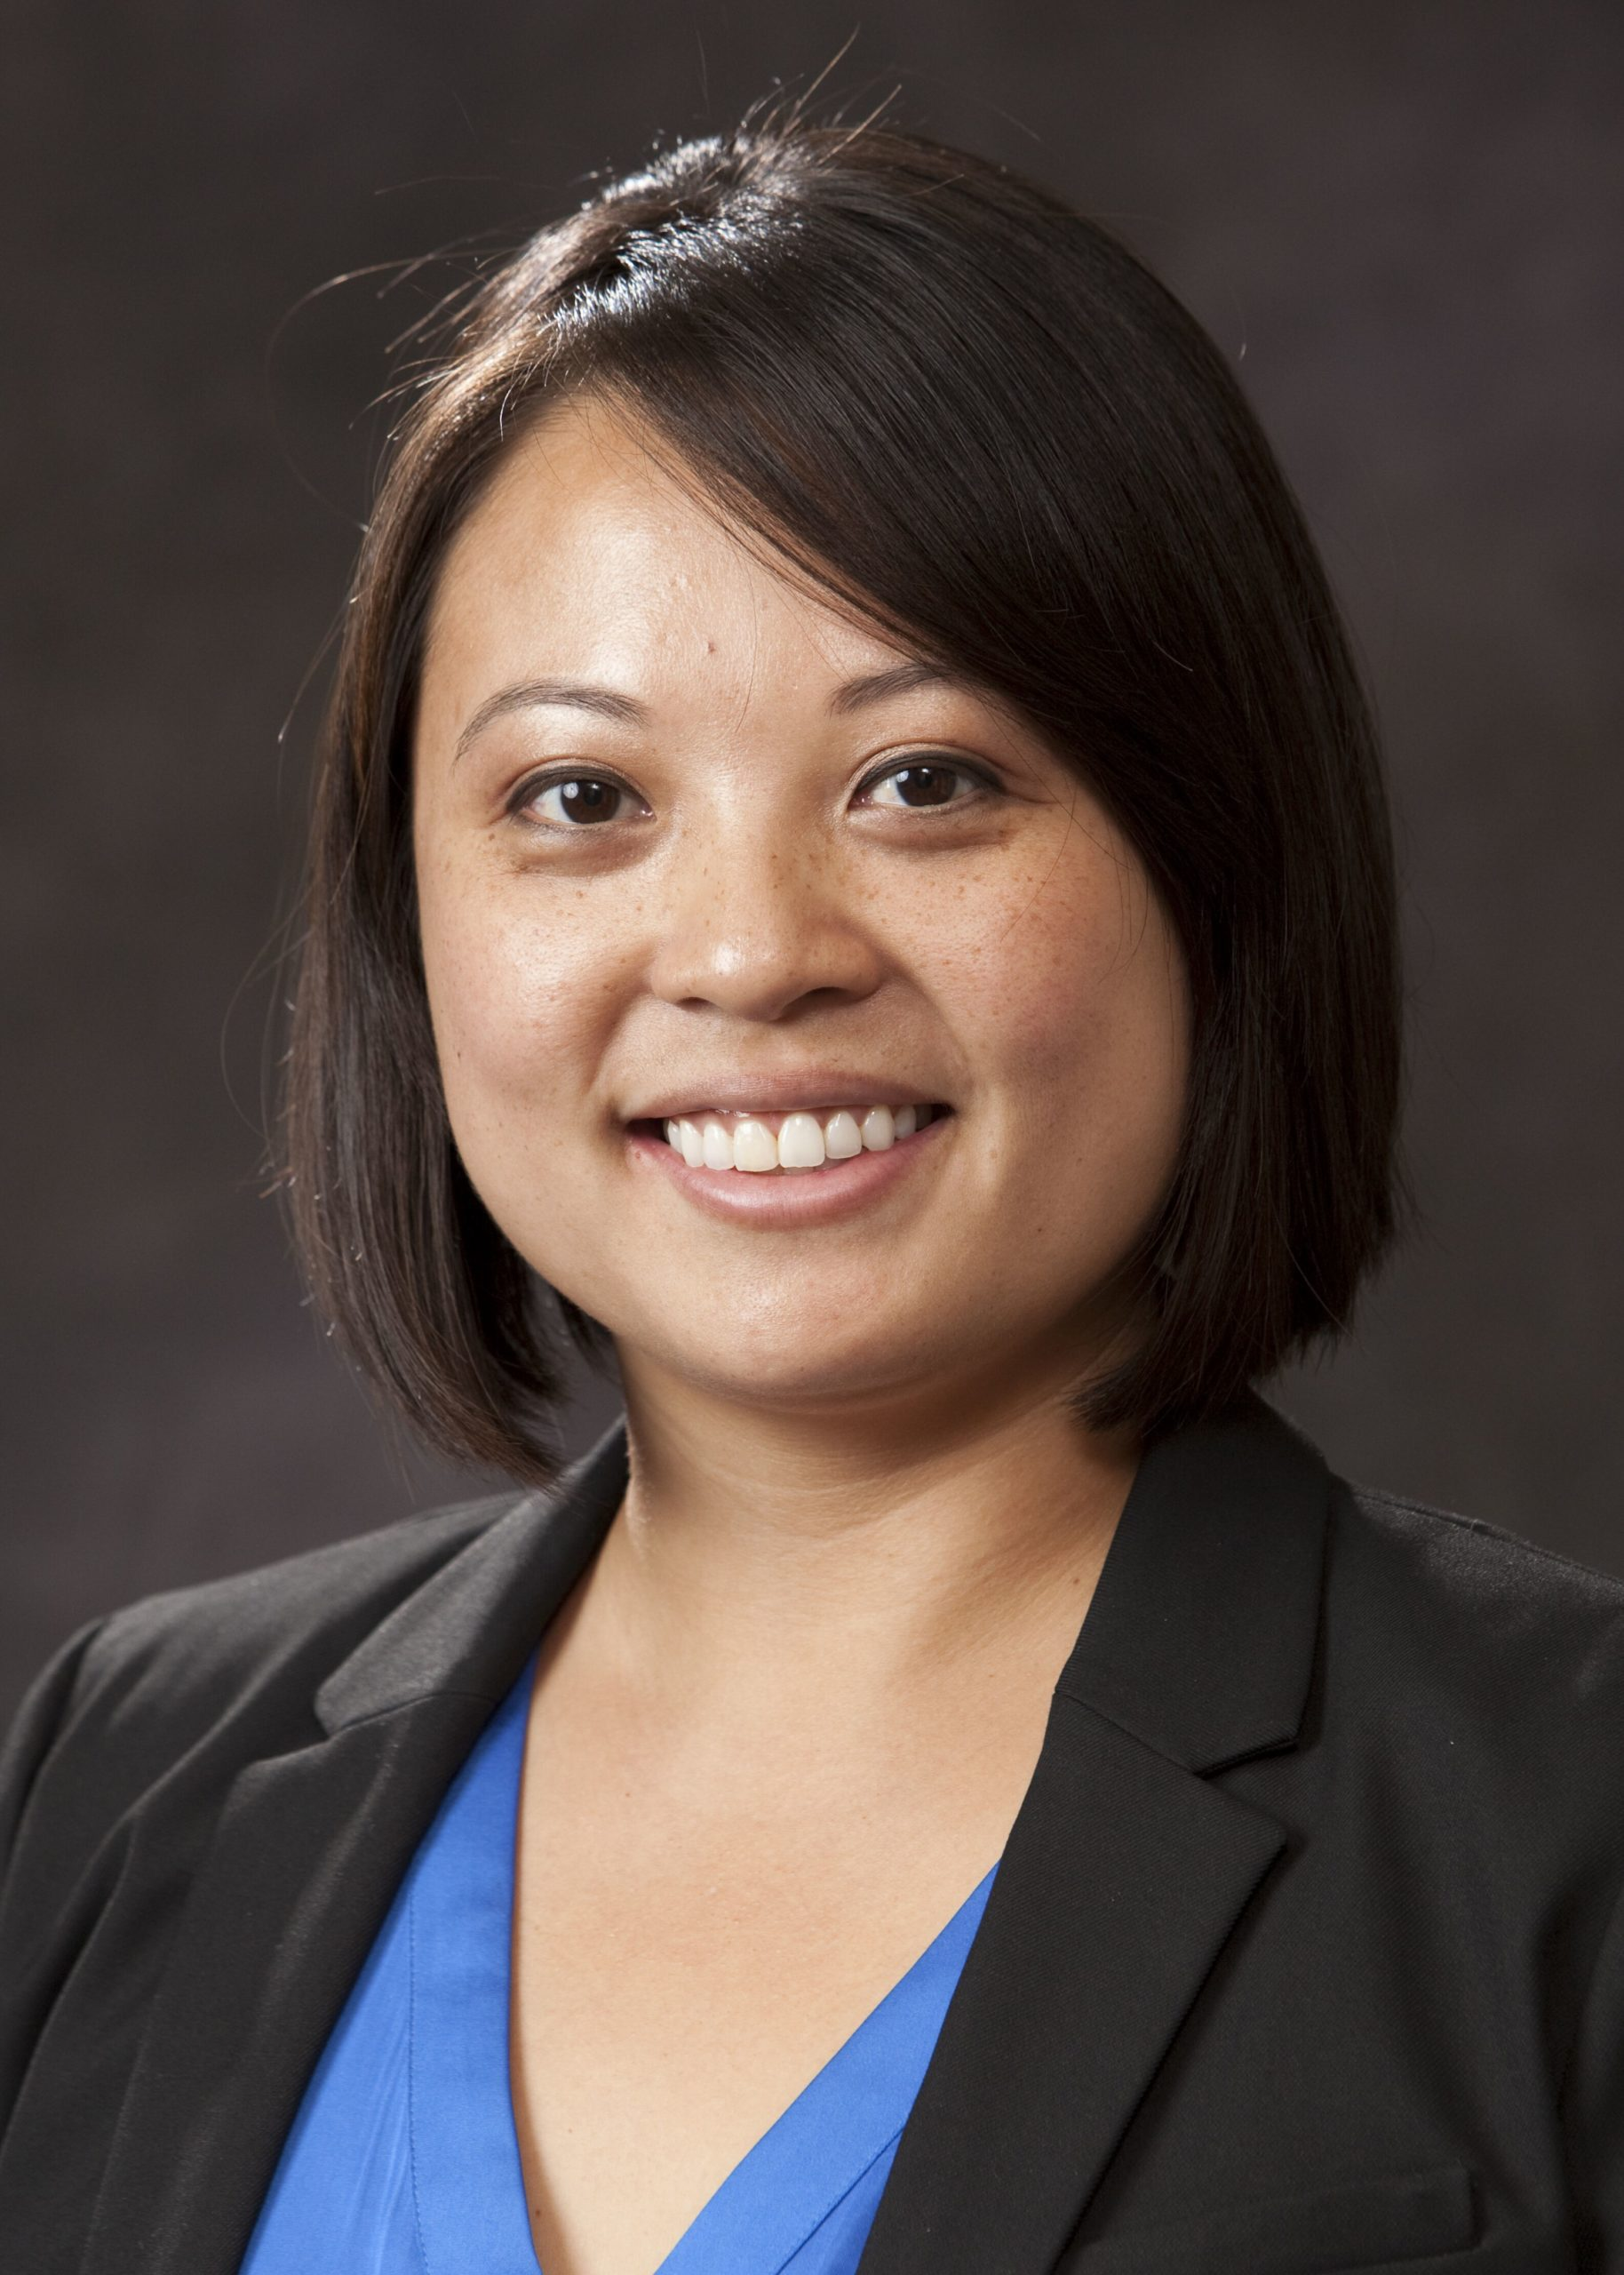 NJRetina is proud to welcome our newest associate Marisa Lau, MD